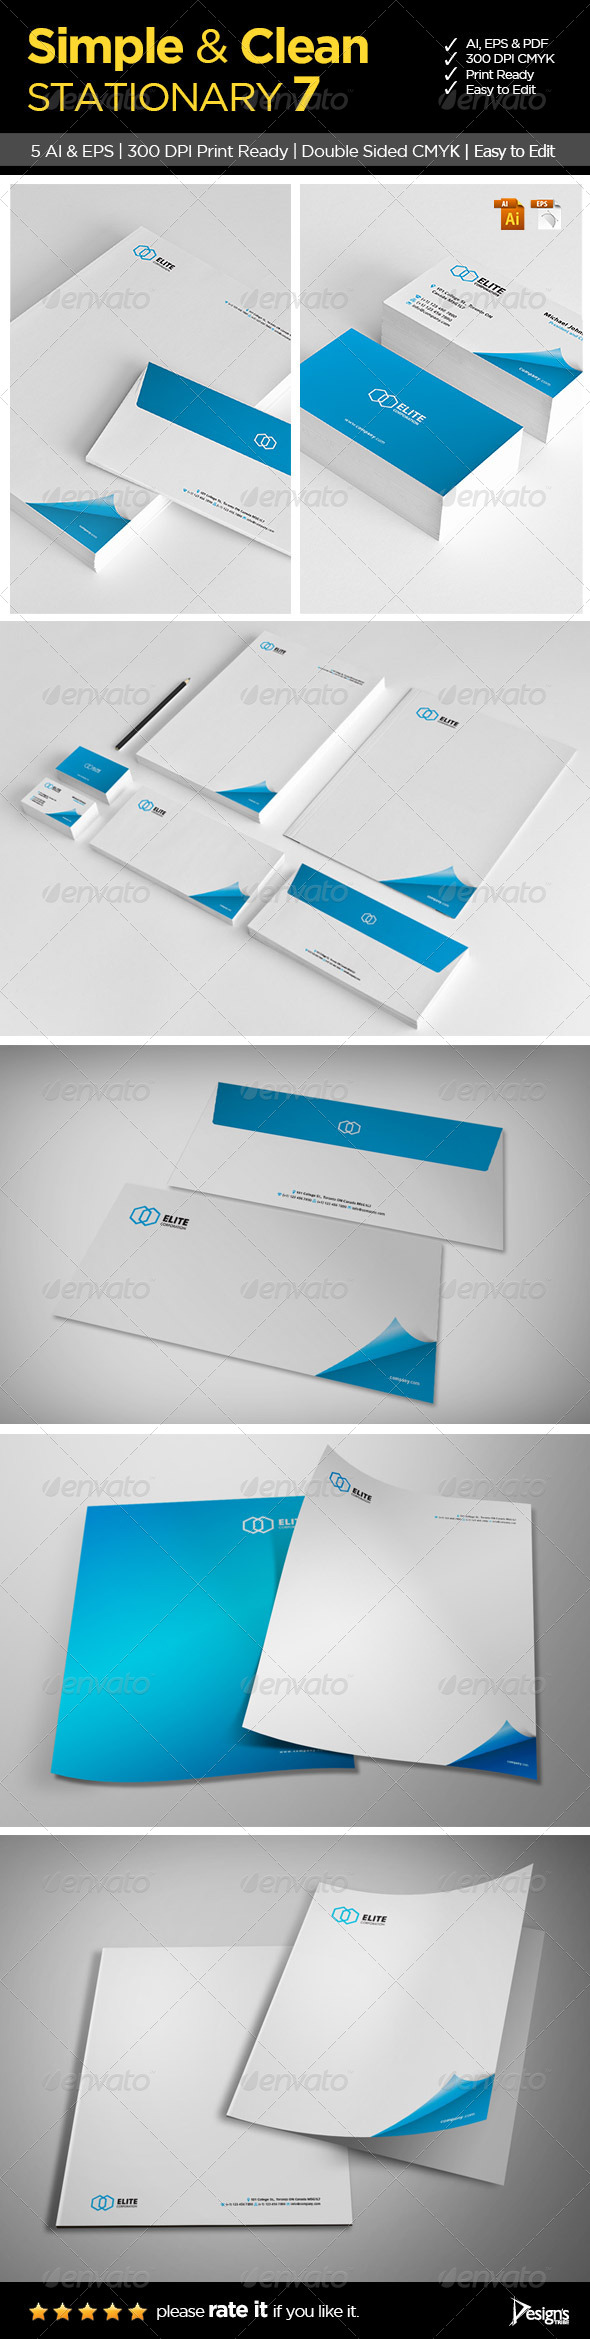 GraphicRiver Simple and Clean Stationary 7 6188057